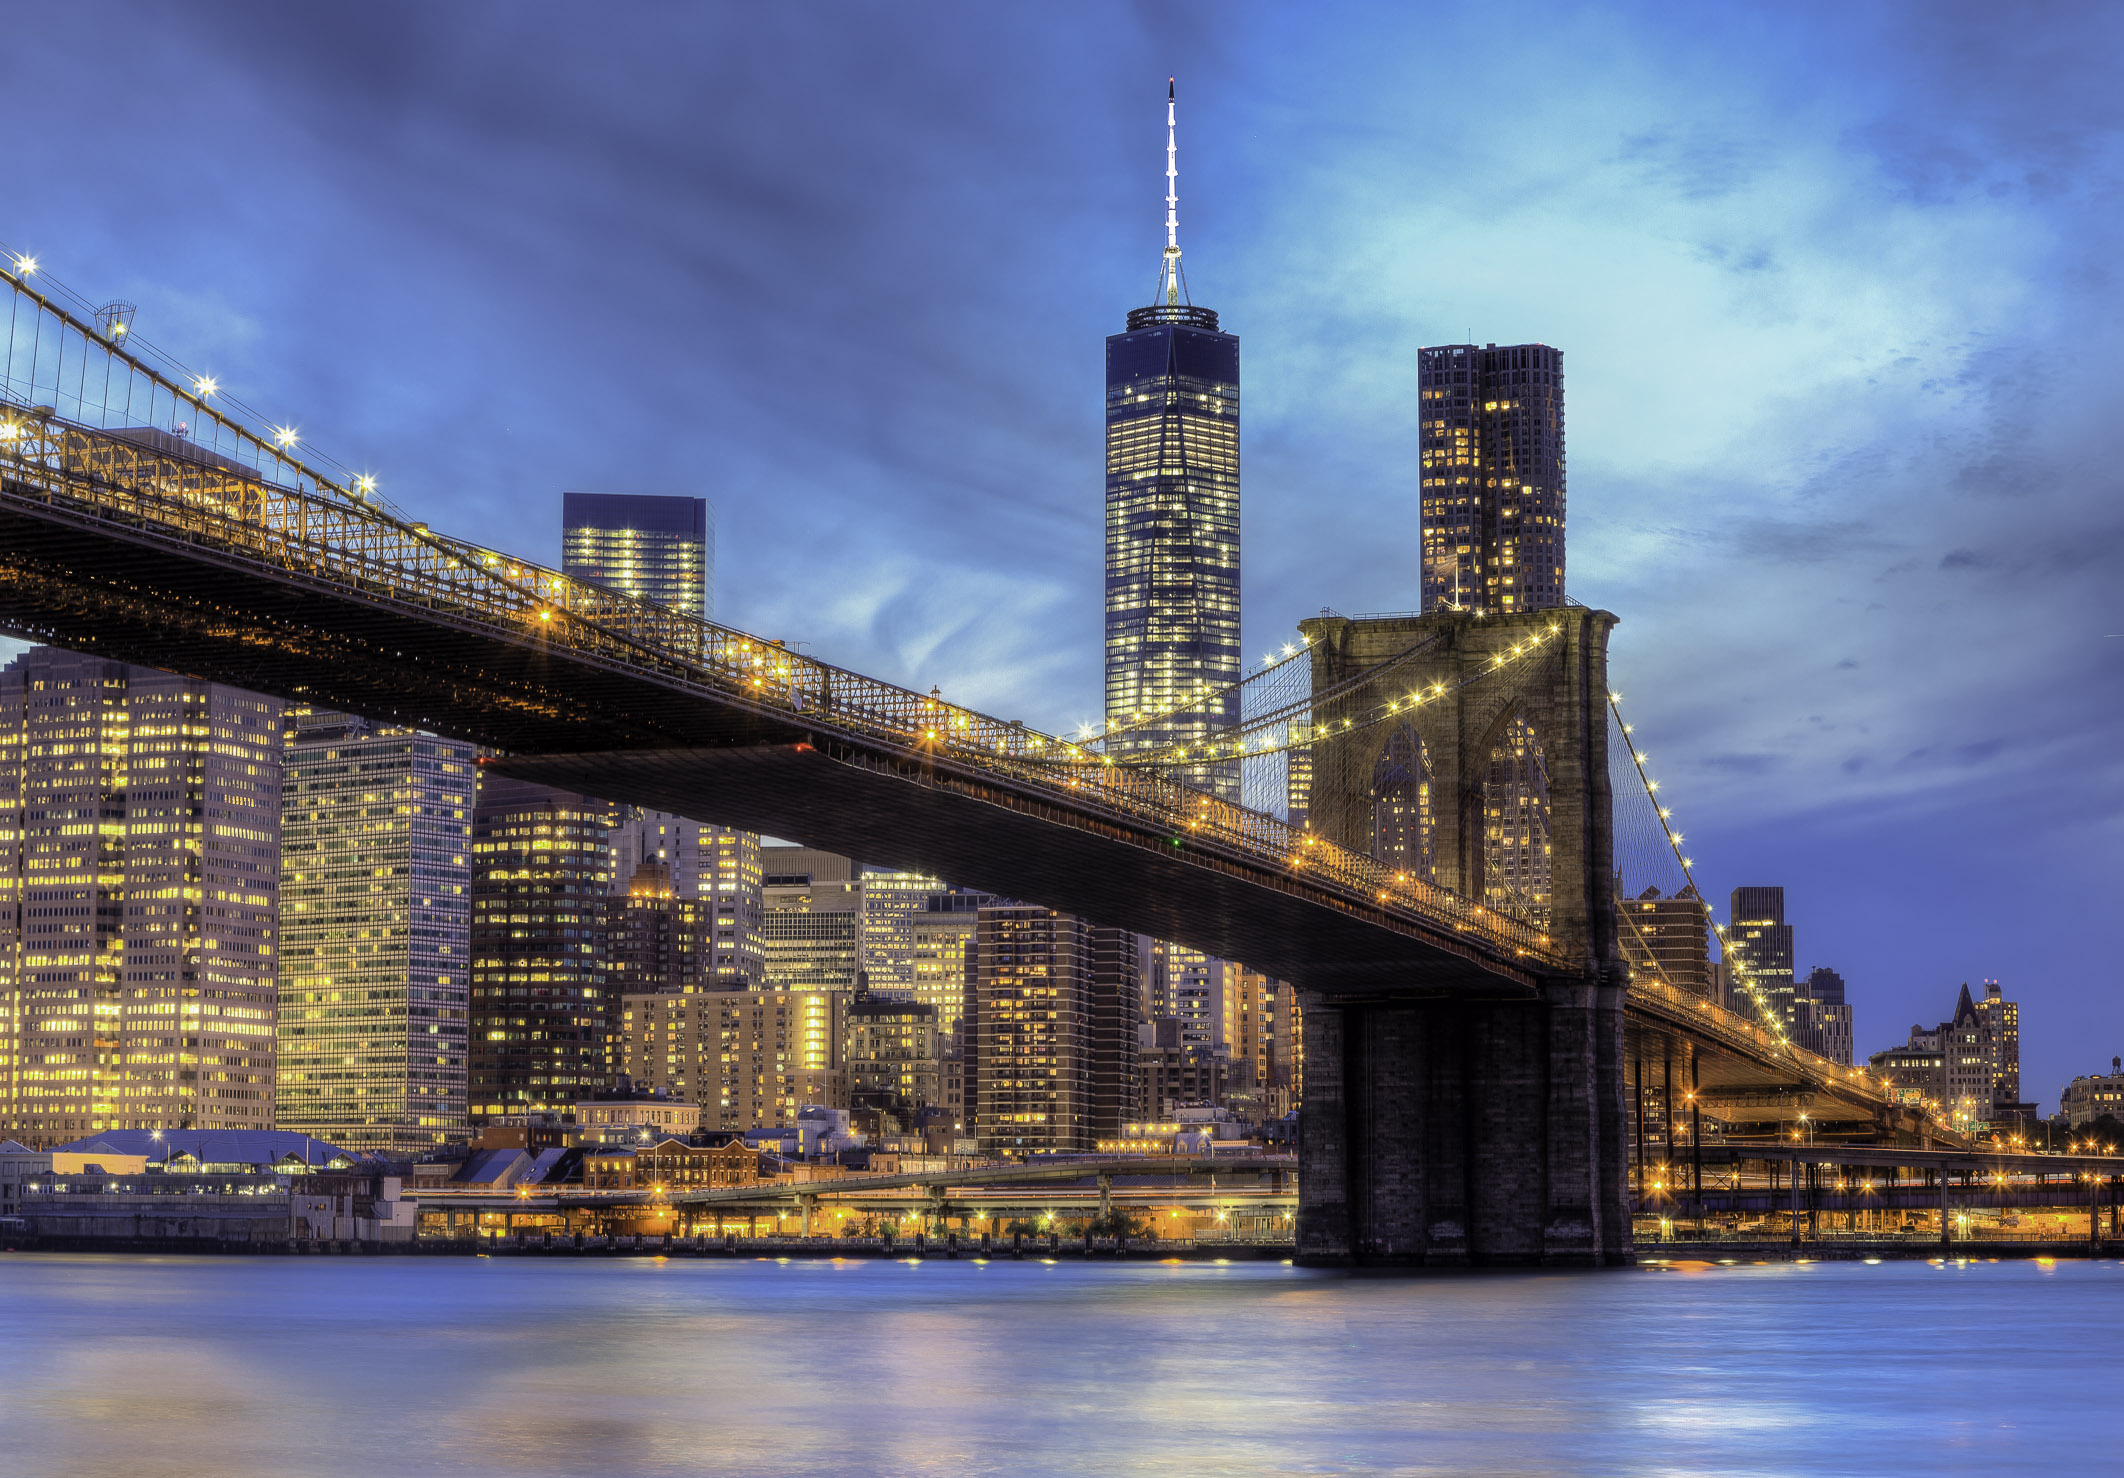 The Brooklyn Bridge and Freedom Tower, New York City